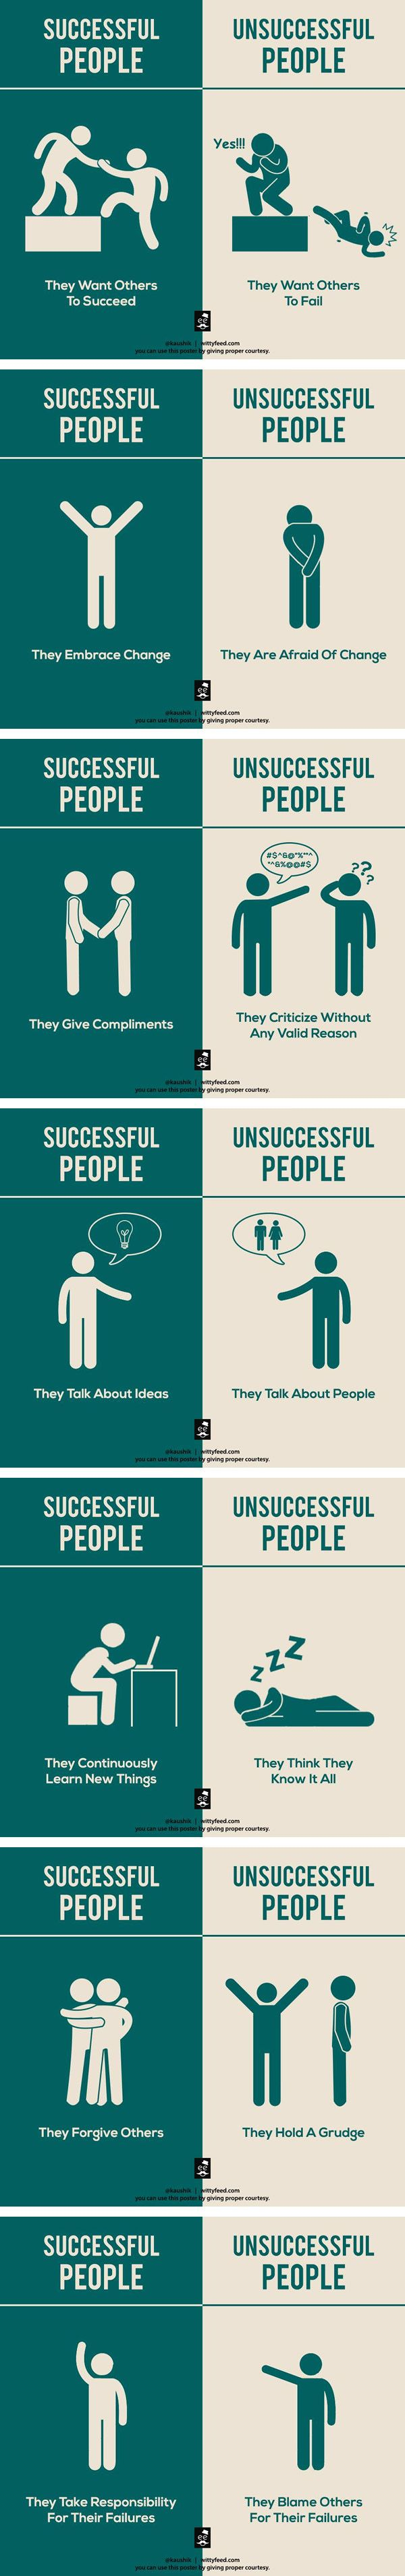 7 Differences Between Successful And Unsuccessful People. Re-pinned by #Europass